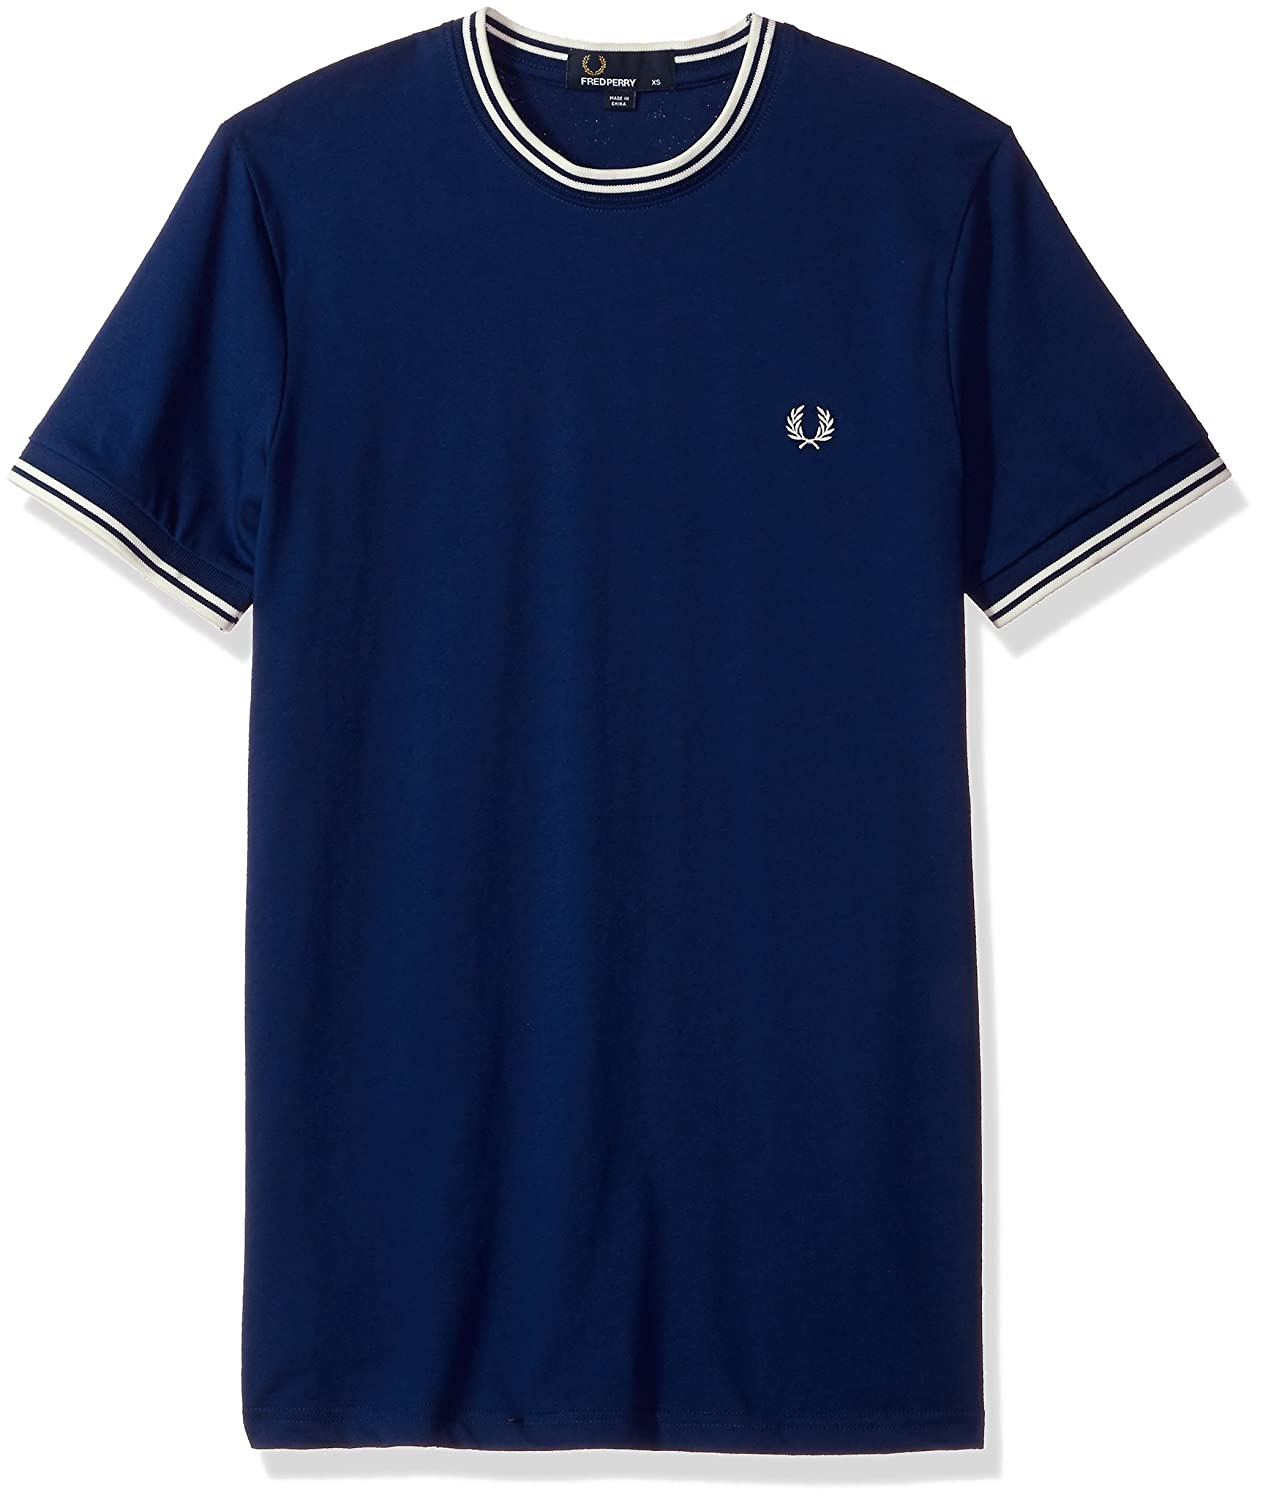 Fred Perry Mens Standard Twin Tipped T-Shirt M1588